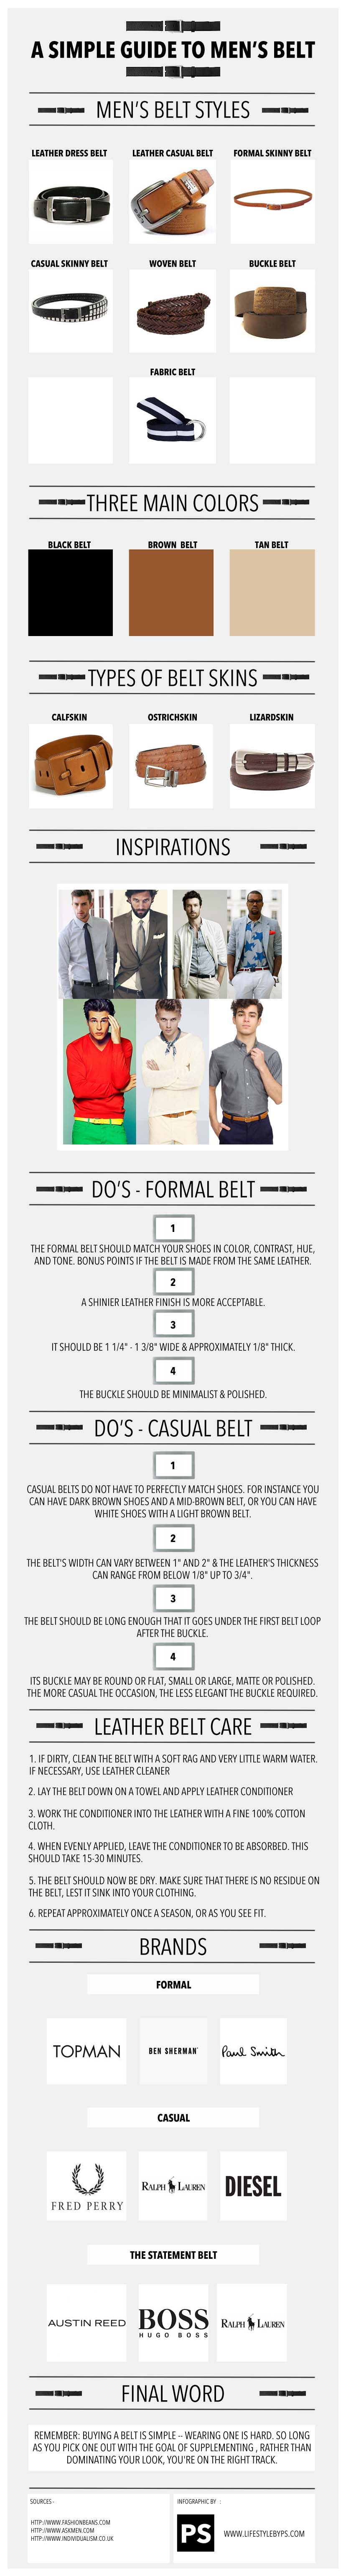 A simple guide to Men's belt